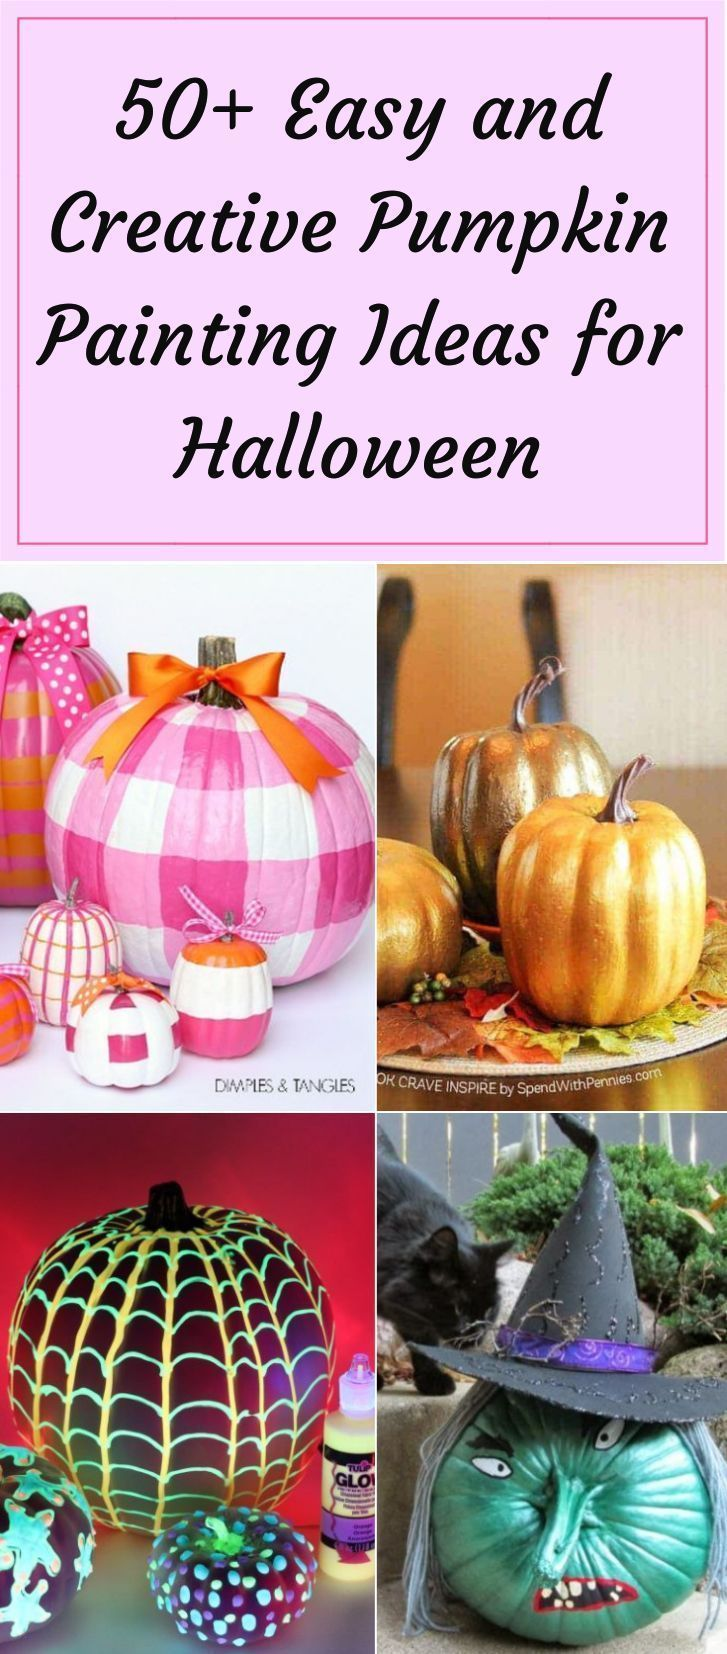 50+ Easy and Creative Pumpkin Painting Ideas for Halloween #pumpkinpaintingideascreative We have listed a few creative Halloween pumpkin painting ideas for your inspiration that can be left alone for long after the spookiness is gone and the colors of fall invade us. #paintedpumpkin #pumkinpaintingideas #halloweenpumpkin #pumpkindecoration #pumpkinpaintingideascreative 50+ Easy and Creative Pumpkin Painting Ideas for Halloween #pumpkinpaintingideascreative We have listed a few creative Halloween #pumpkinpaintingideascreative